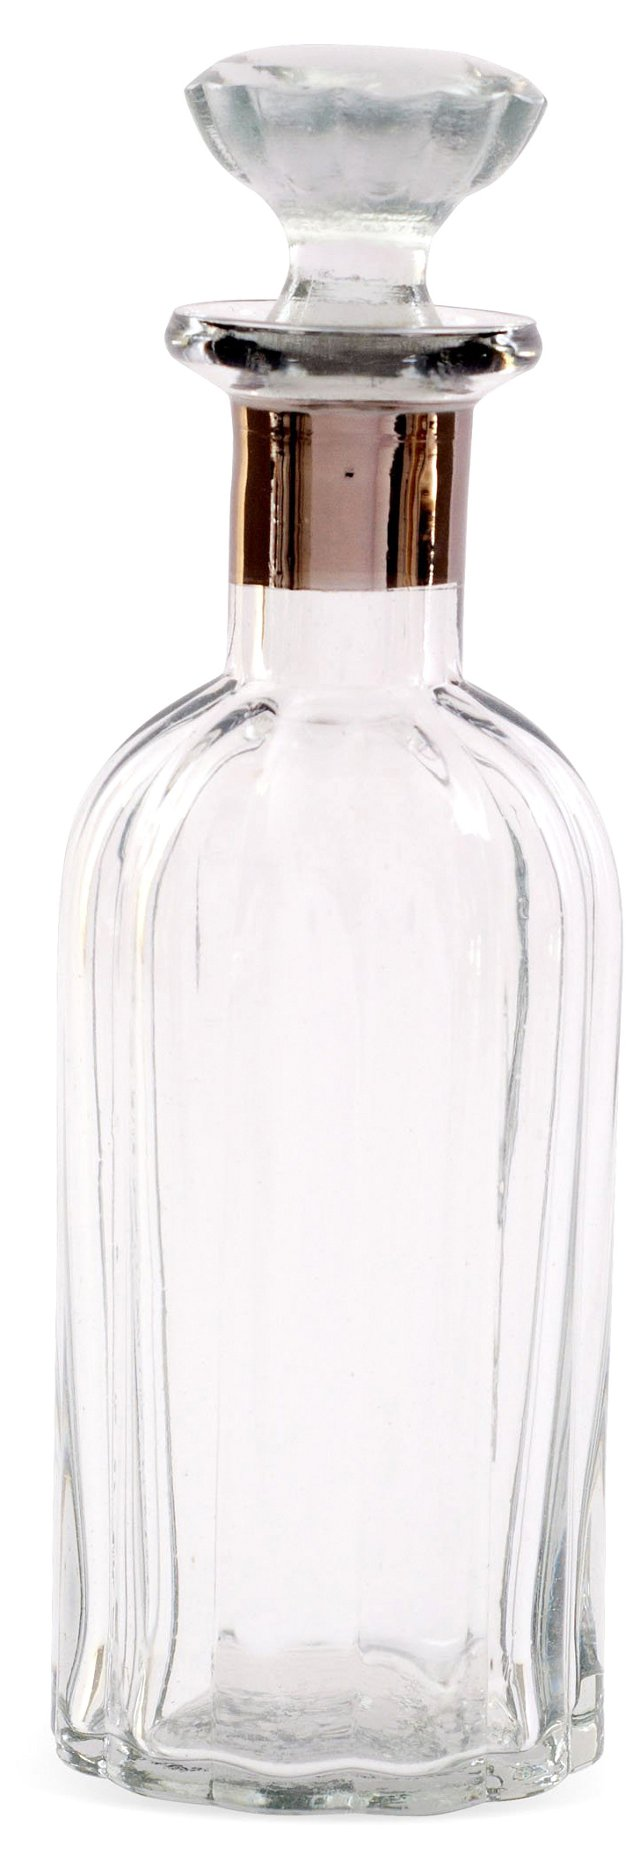 Narrow Distinguished Decanter